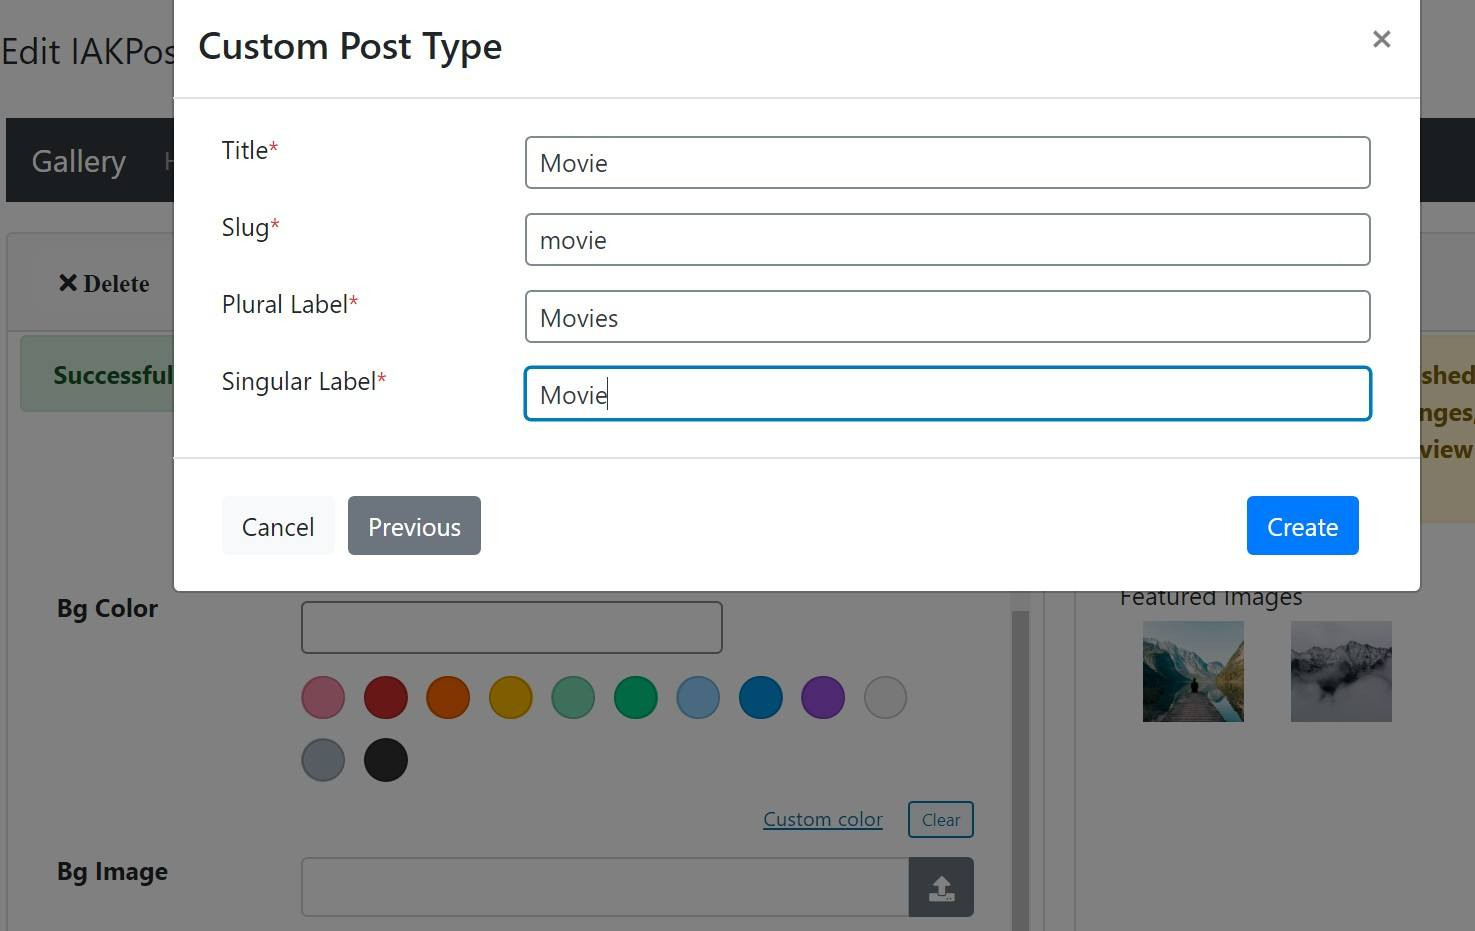 Creating a custom post type